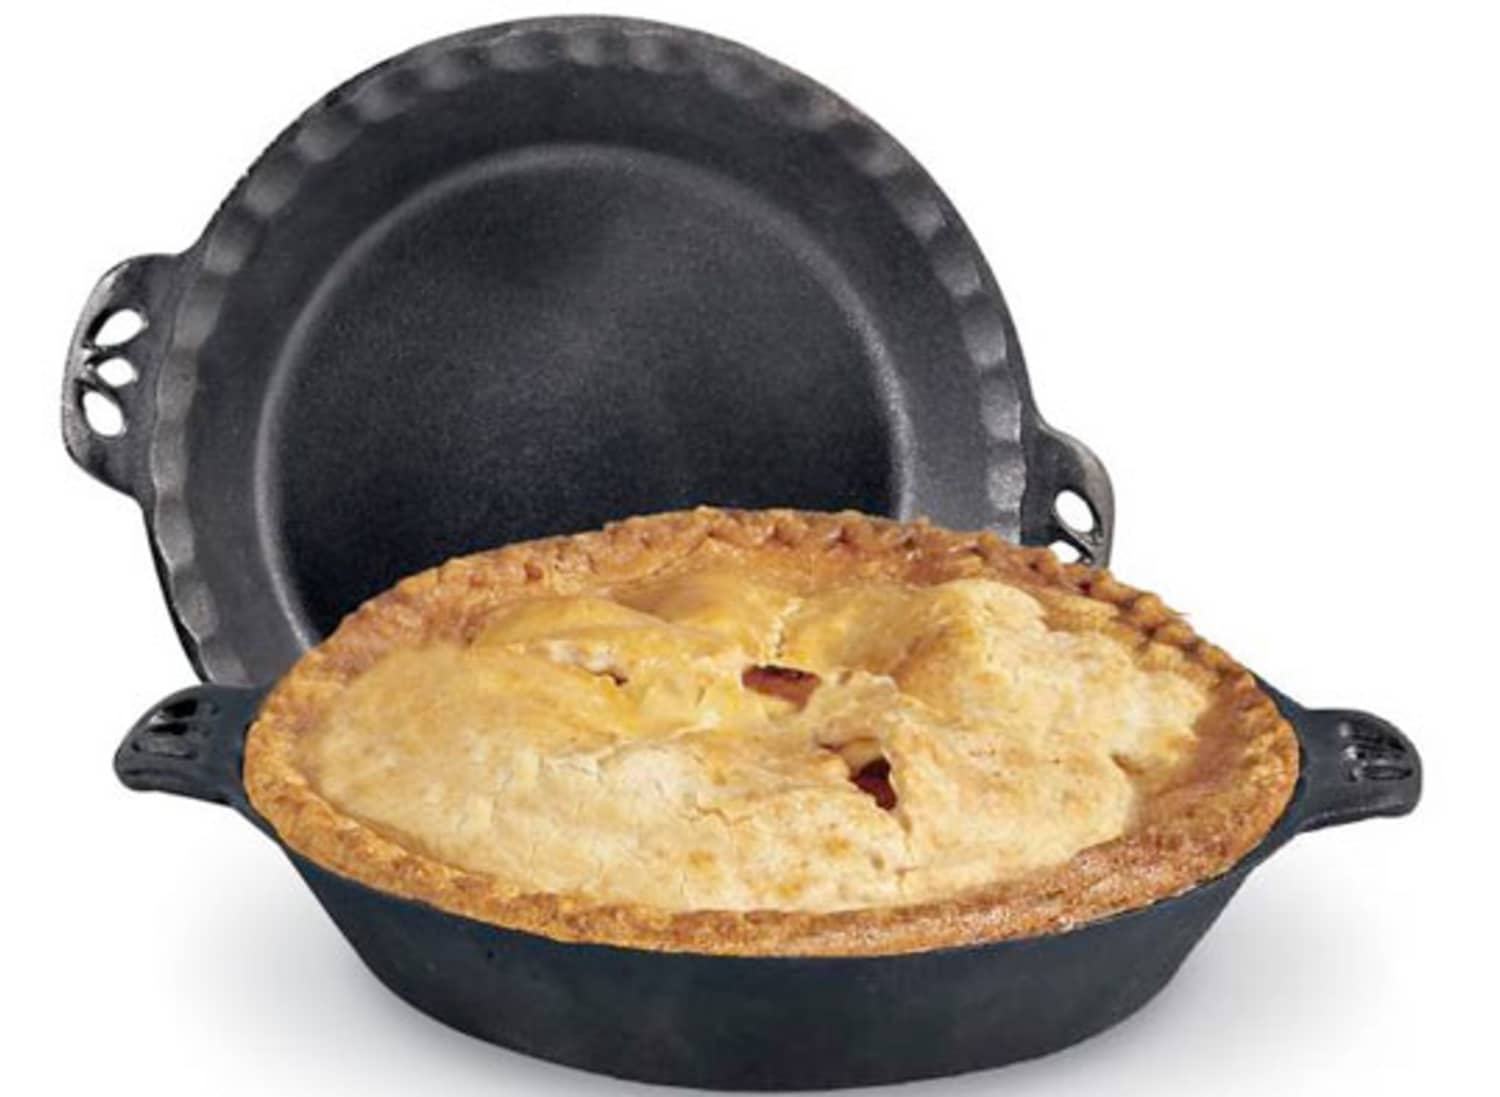 Cast Iron Pie Pans Have You Ever Used One Kitchn